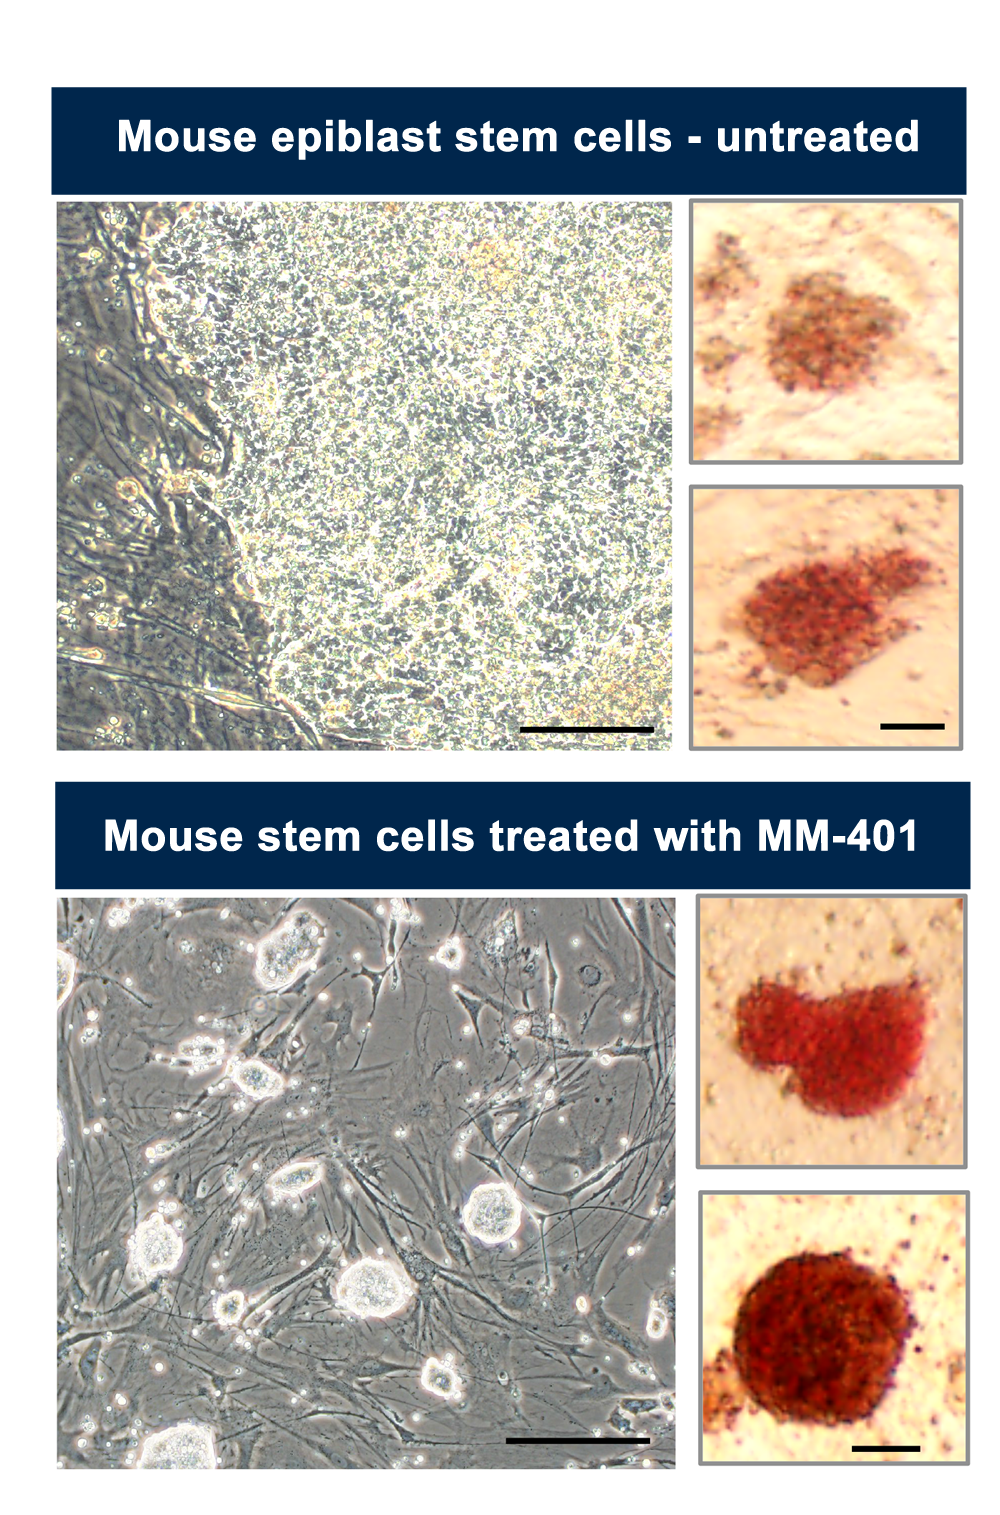 Stem cell before and after MM-401 treatment